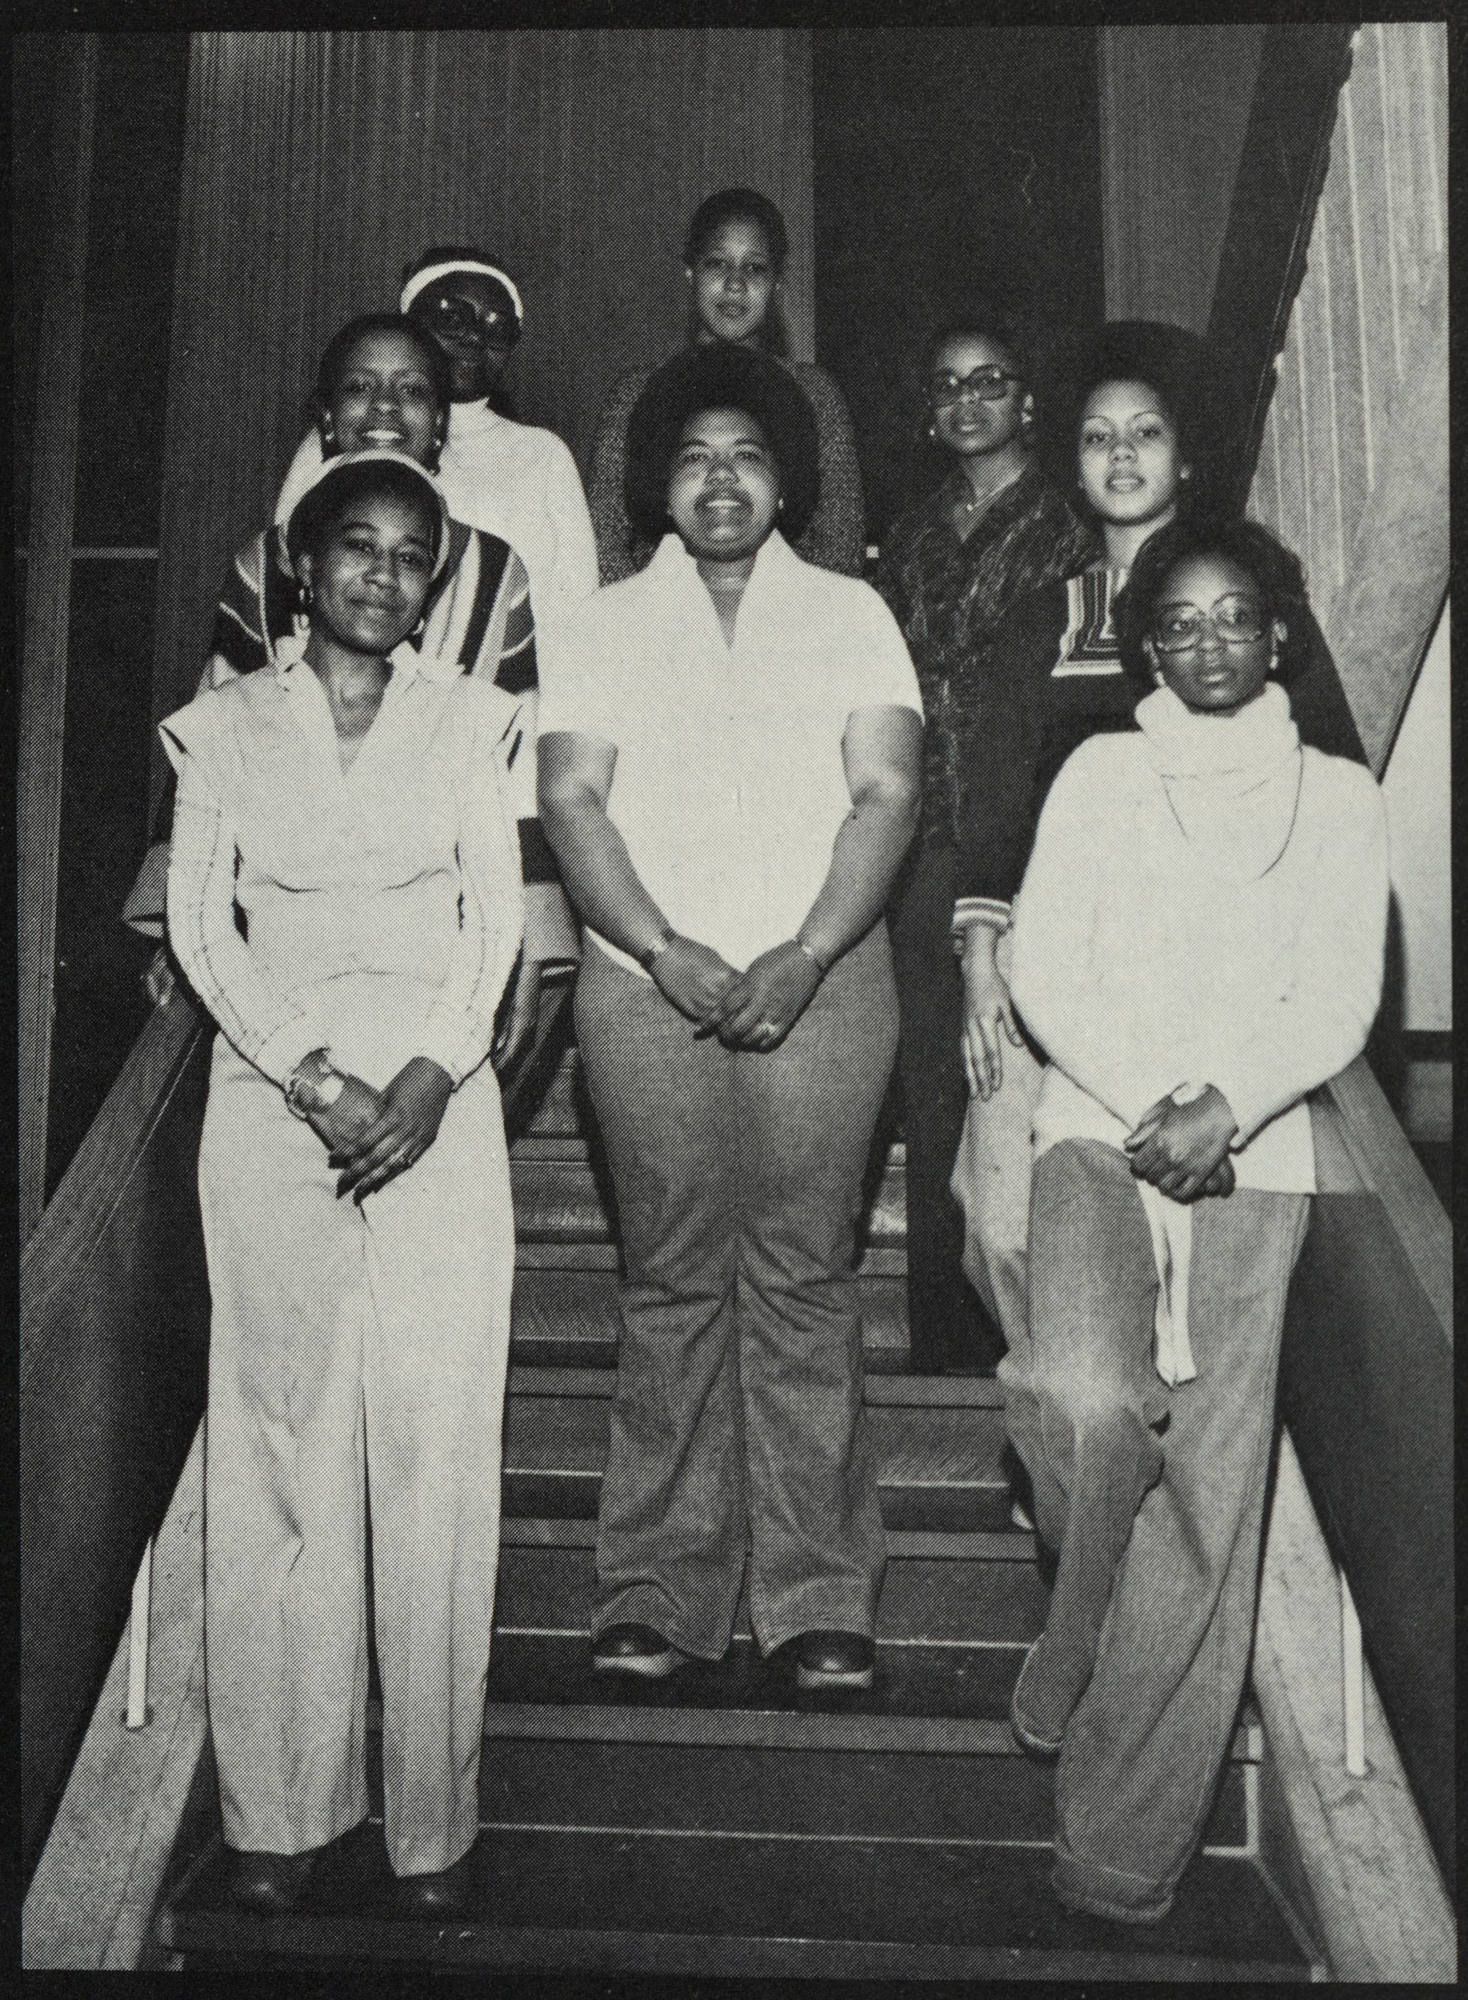 http://spec.lib.vt.edu/pickup/Omeka_upload/AlphaKappaAlpha_1977.jpg